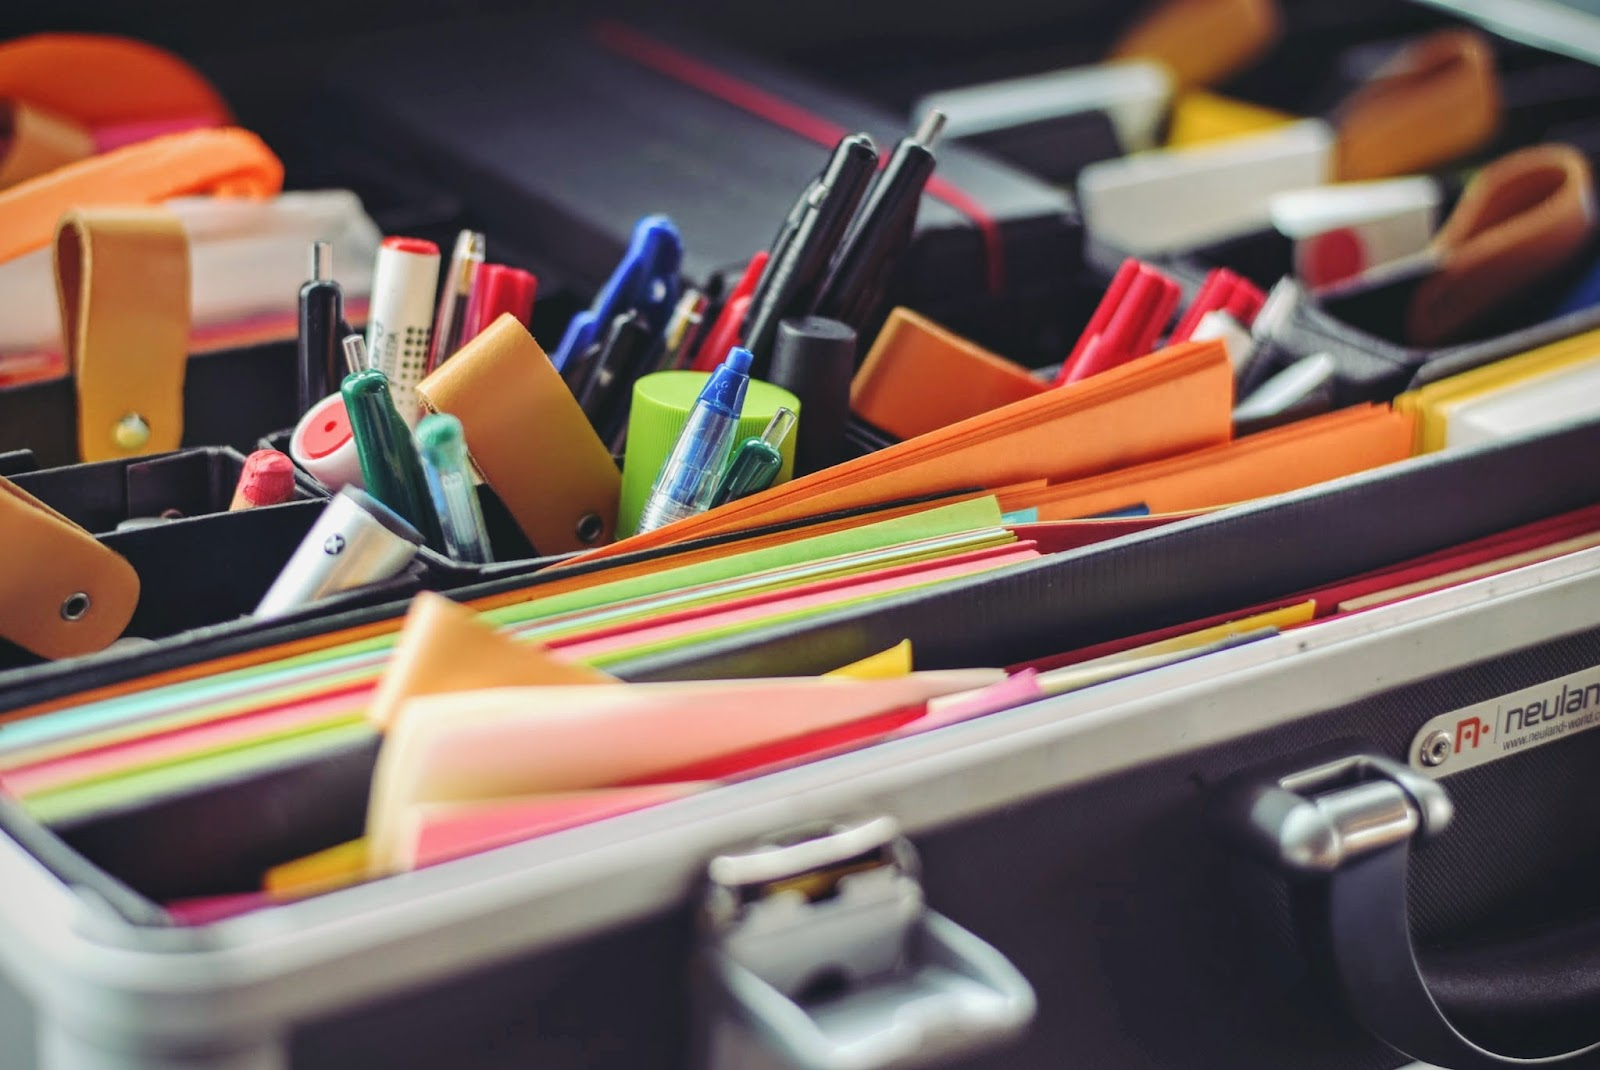 Abrams Home Solutions Back to School organizing in Chicago suburbs, paper filing system